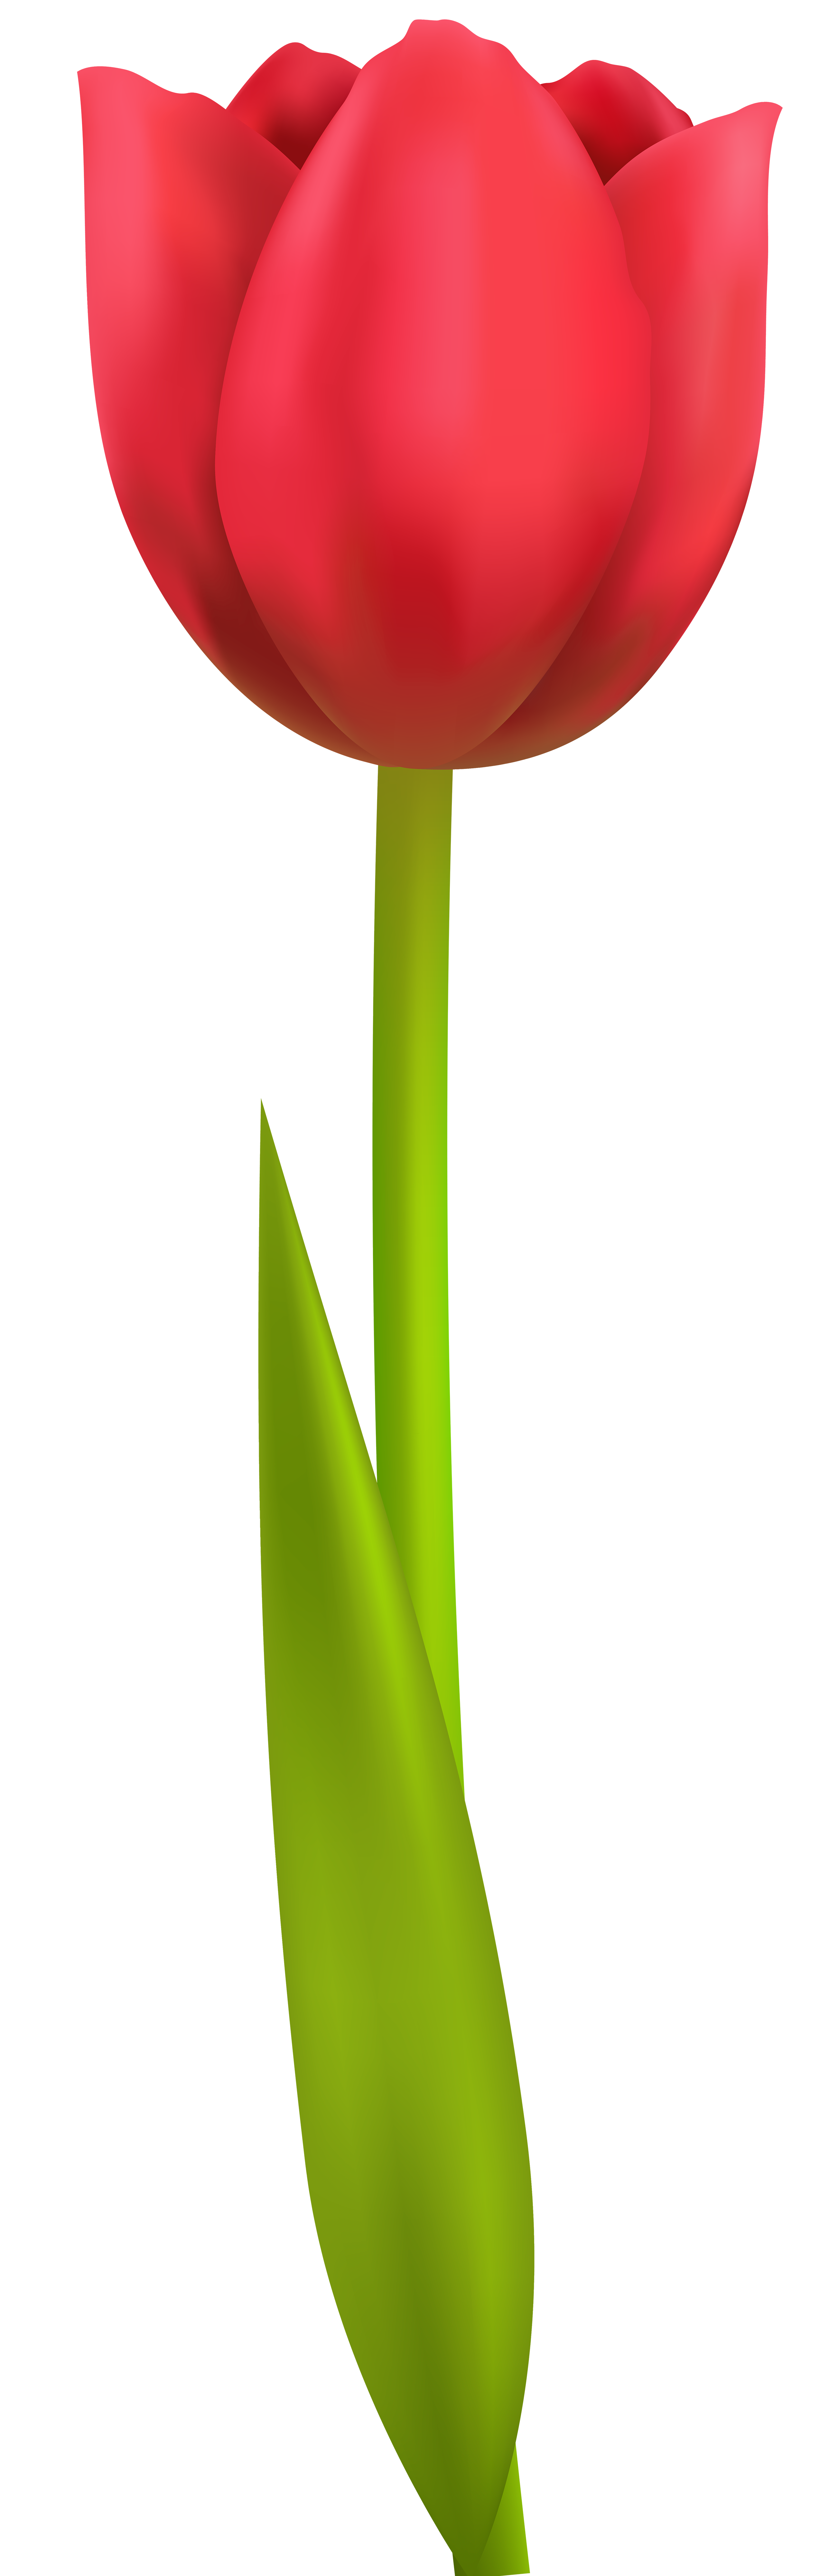 Tulip Clipart Png.